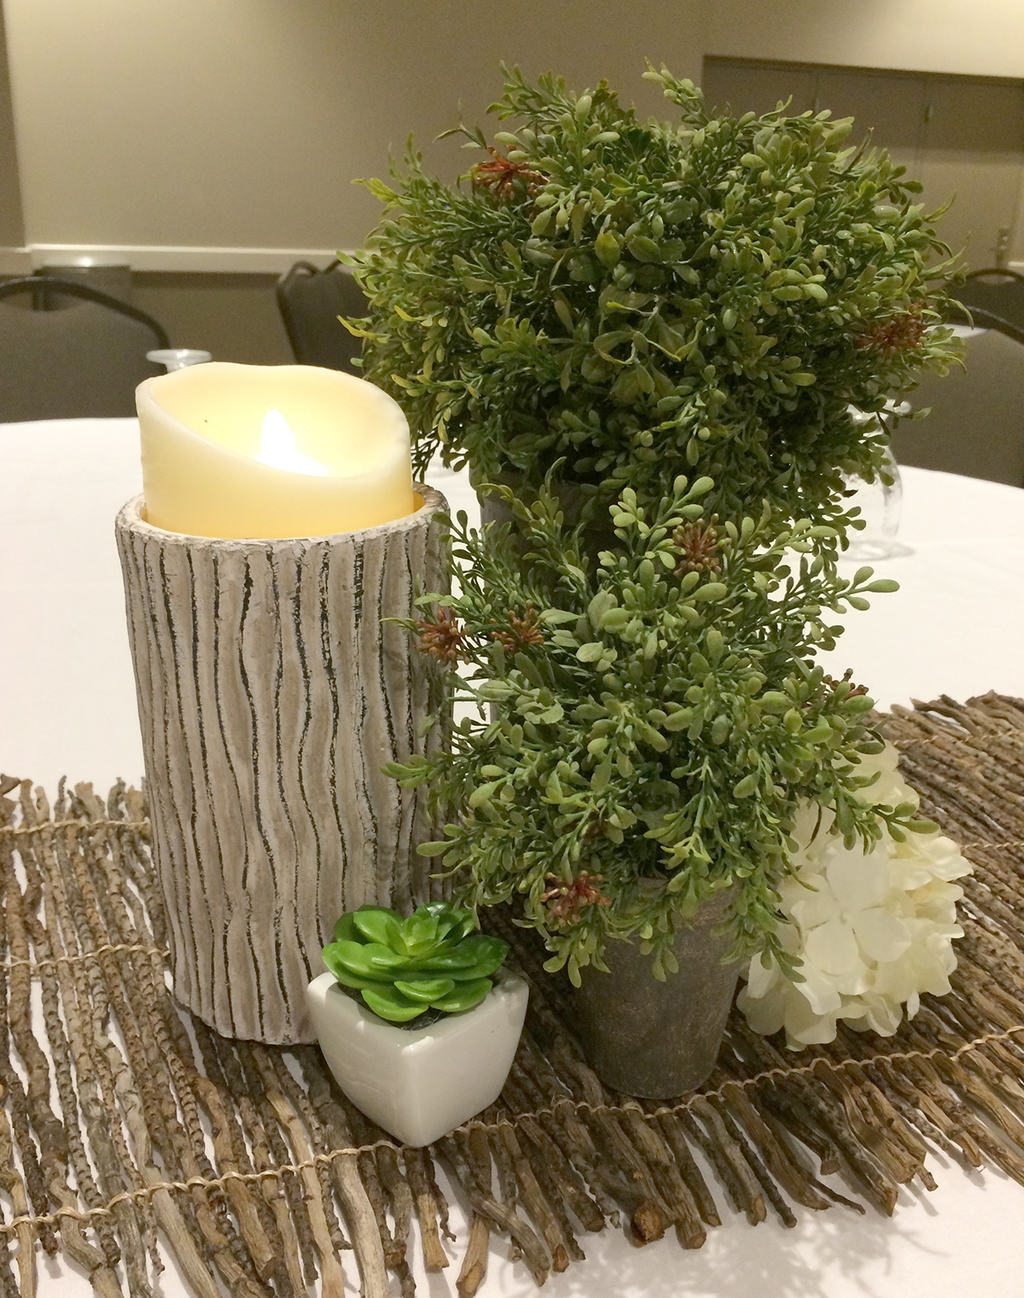 Nature_Outdoorsy_Centerpiece3_web